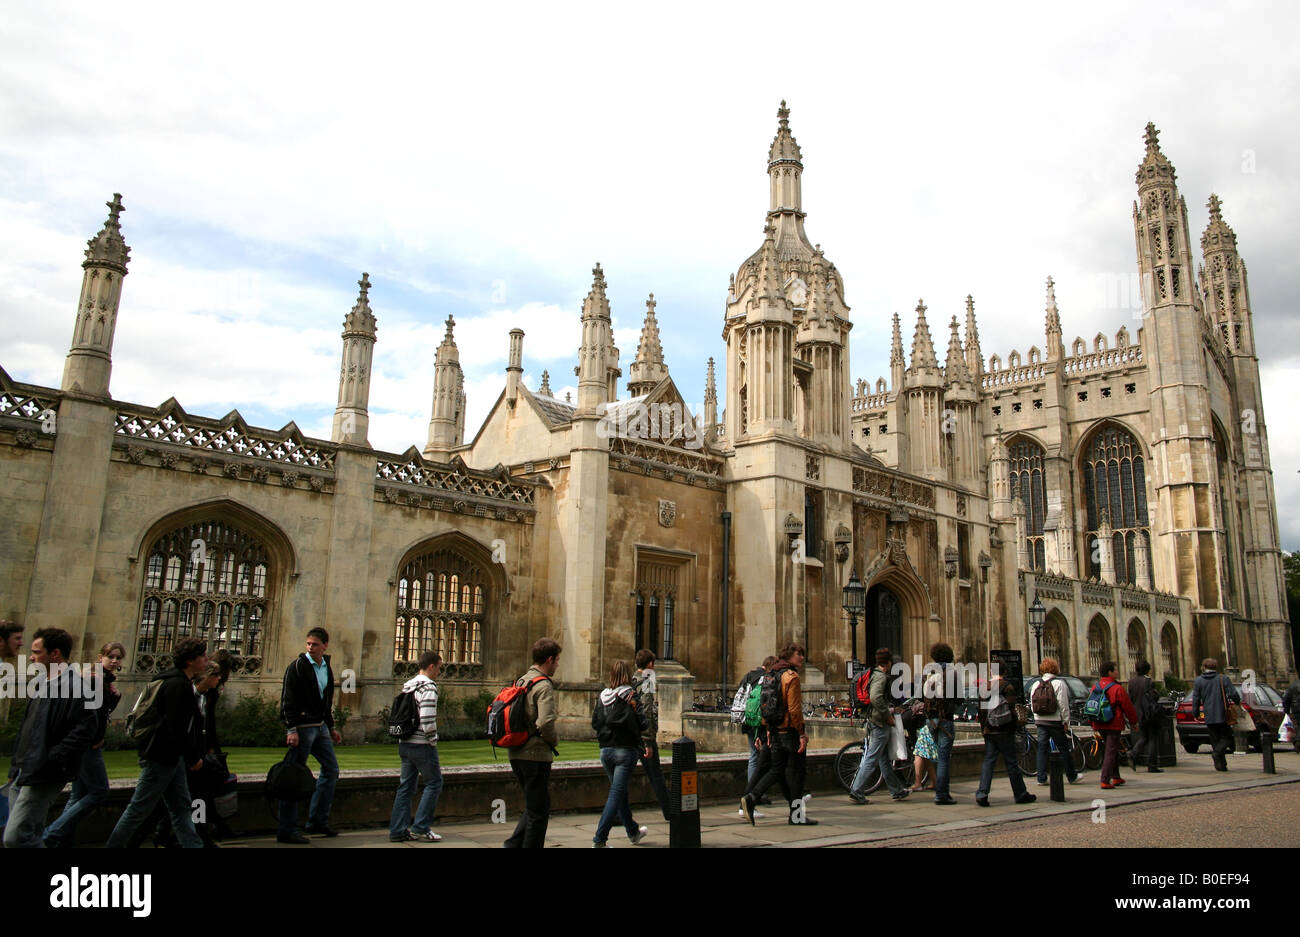 Tourists on Kings Parade in Cambridge - Stock Image